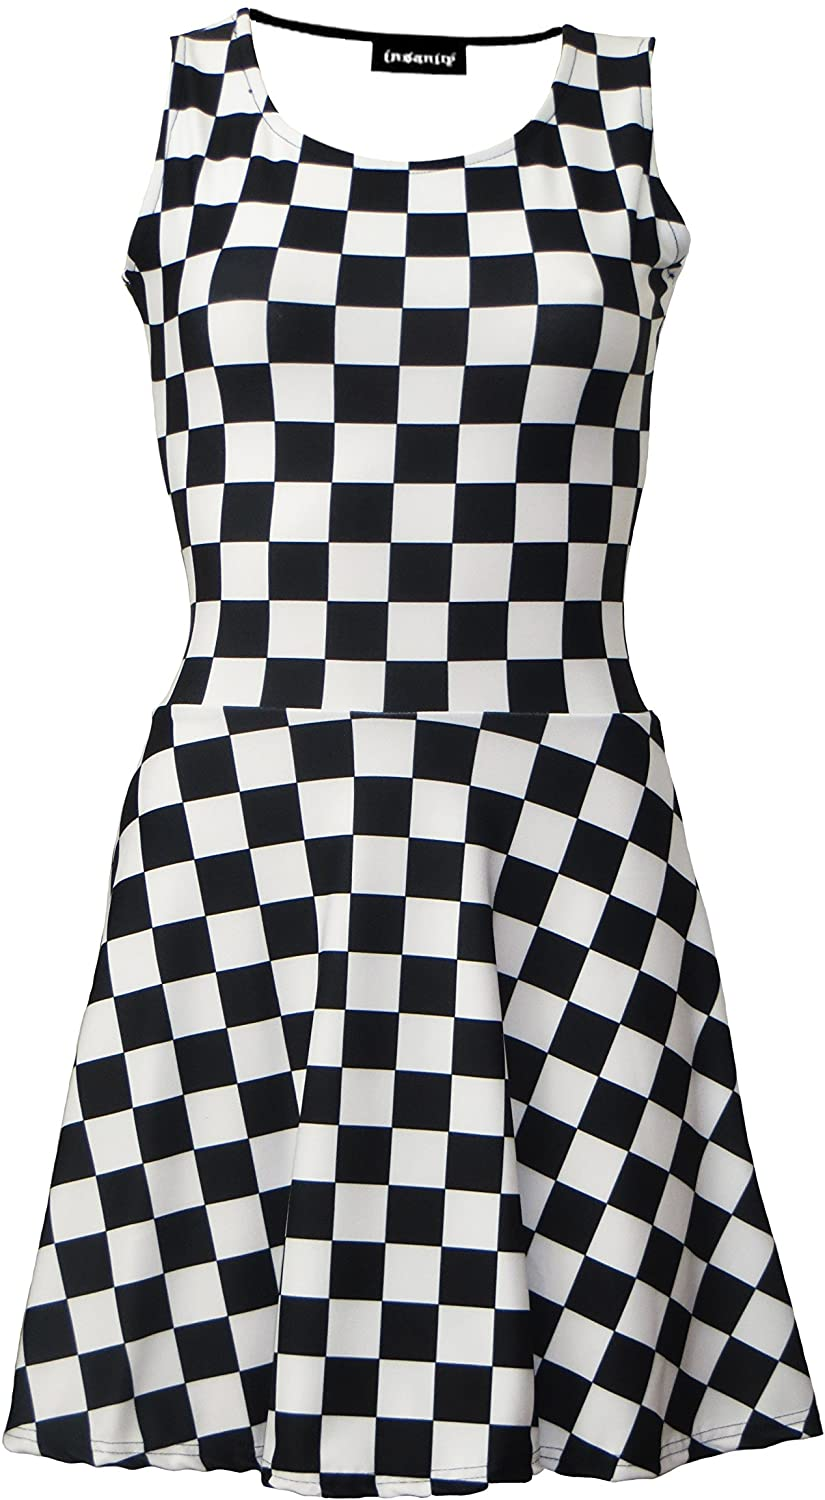 Insanity Clothing Monochrome Chequered Chess Board Print Skater Dress